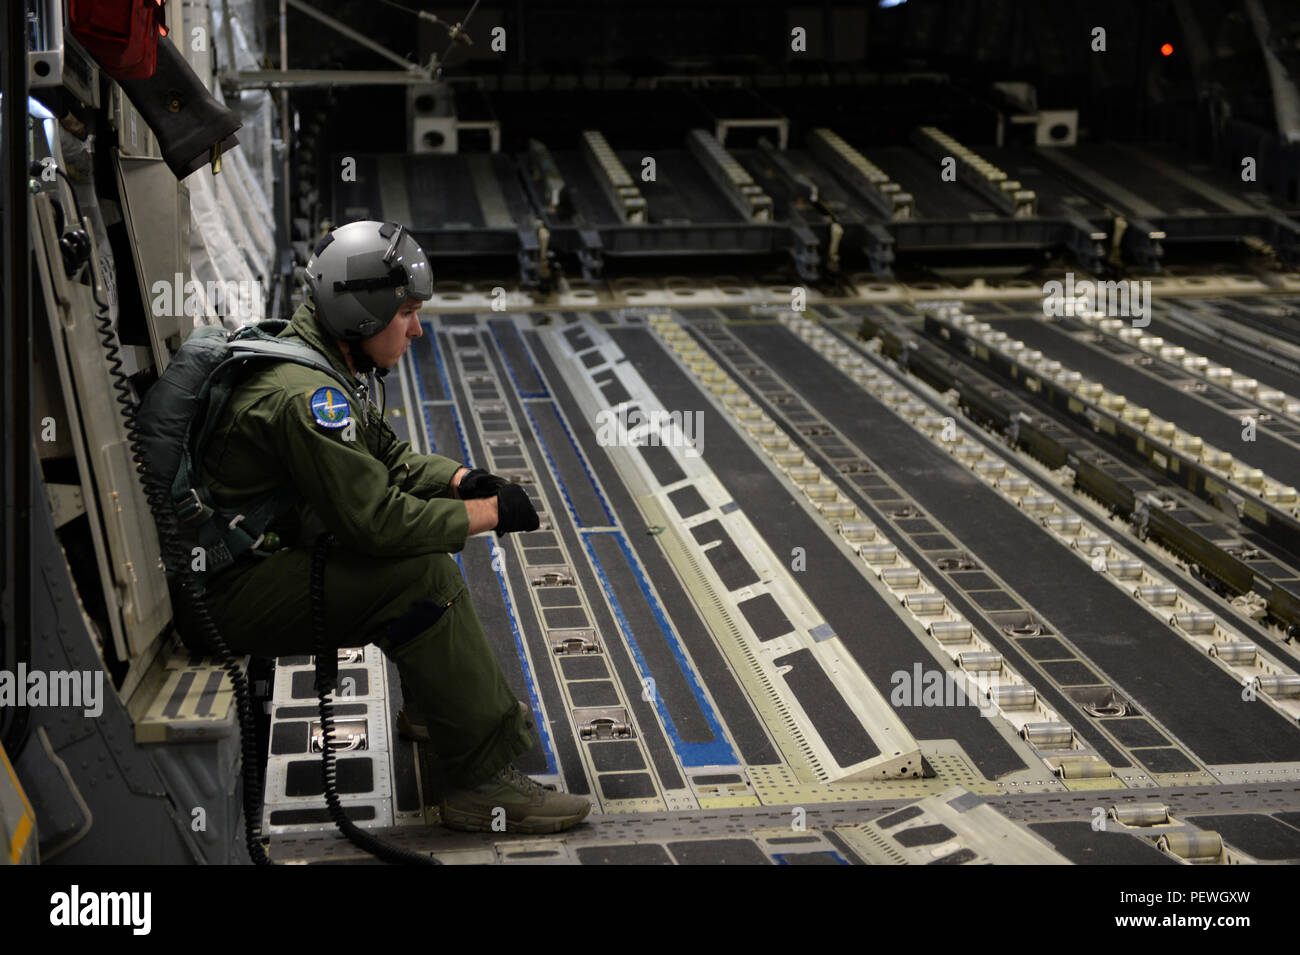 U.S. Air Force Senior Airman Glen Baker, 7th Airlift Squadron, waits for a container delivery systems drop on a C-17 Globemaster III from McChord Air Force Base, Wash., during Large Package Week at Pope Army Airfield, N.C., Feb. 4, 2016. Large Package Week leads up to Joint Operational Access Exercise 16-5, where in Army and Air Force units work together to improve interoperability for worldwide crisis, contingency and humanitarian operations. (U.S. Air Force photo by Staff Sgt. Sandra Welch) - Stock Image